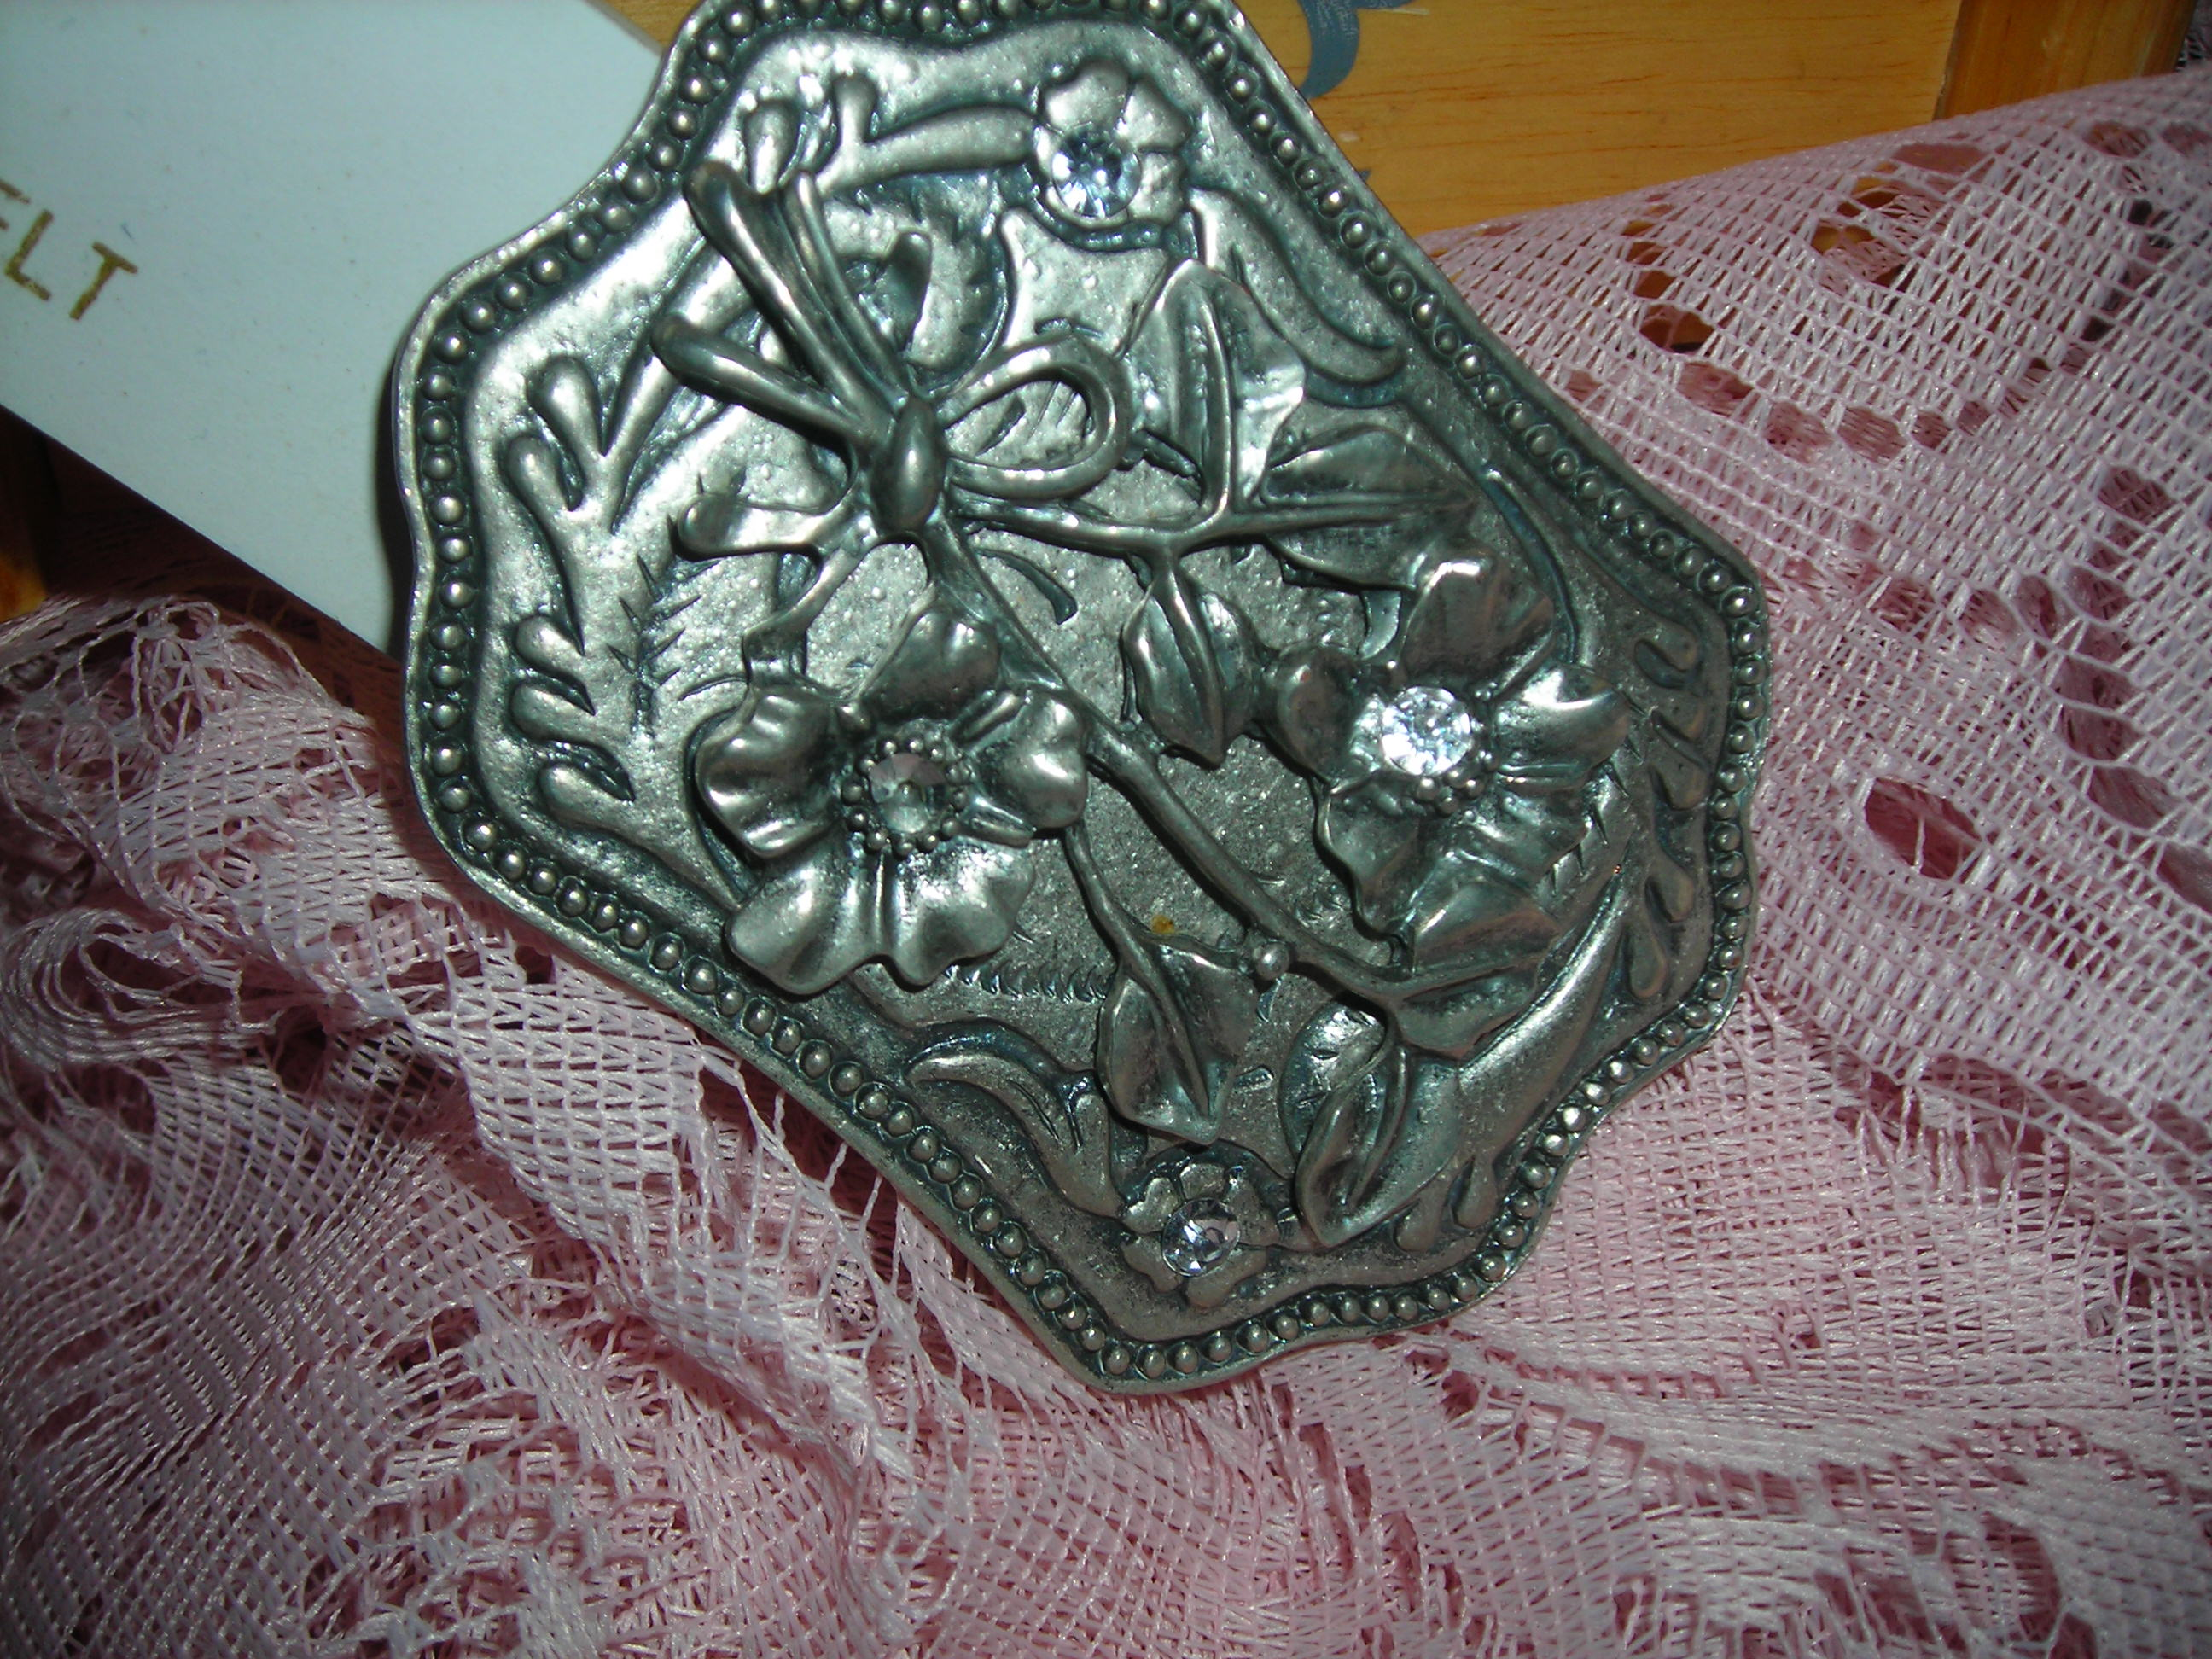 belt buckle bought because of bling ... but you can't see it very well in this pic